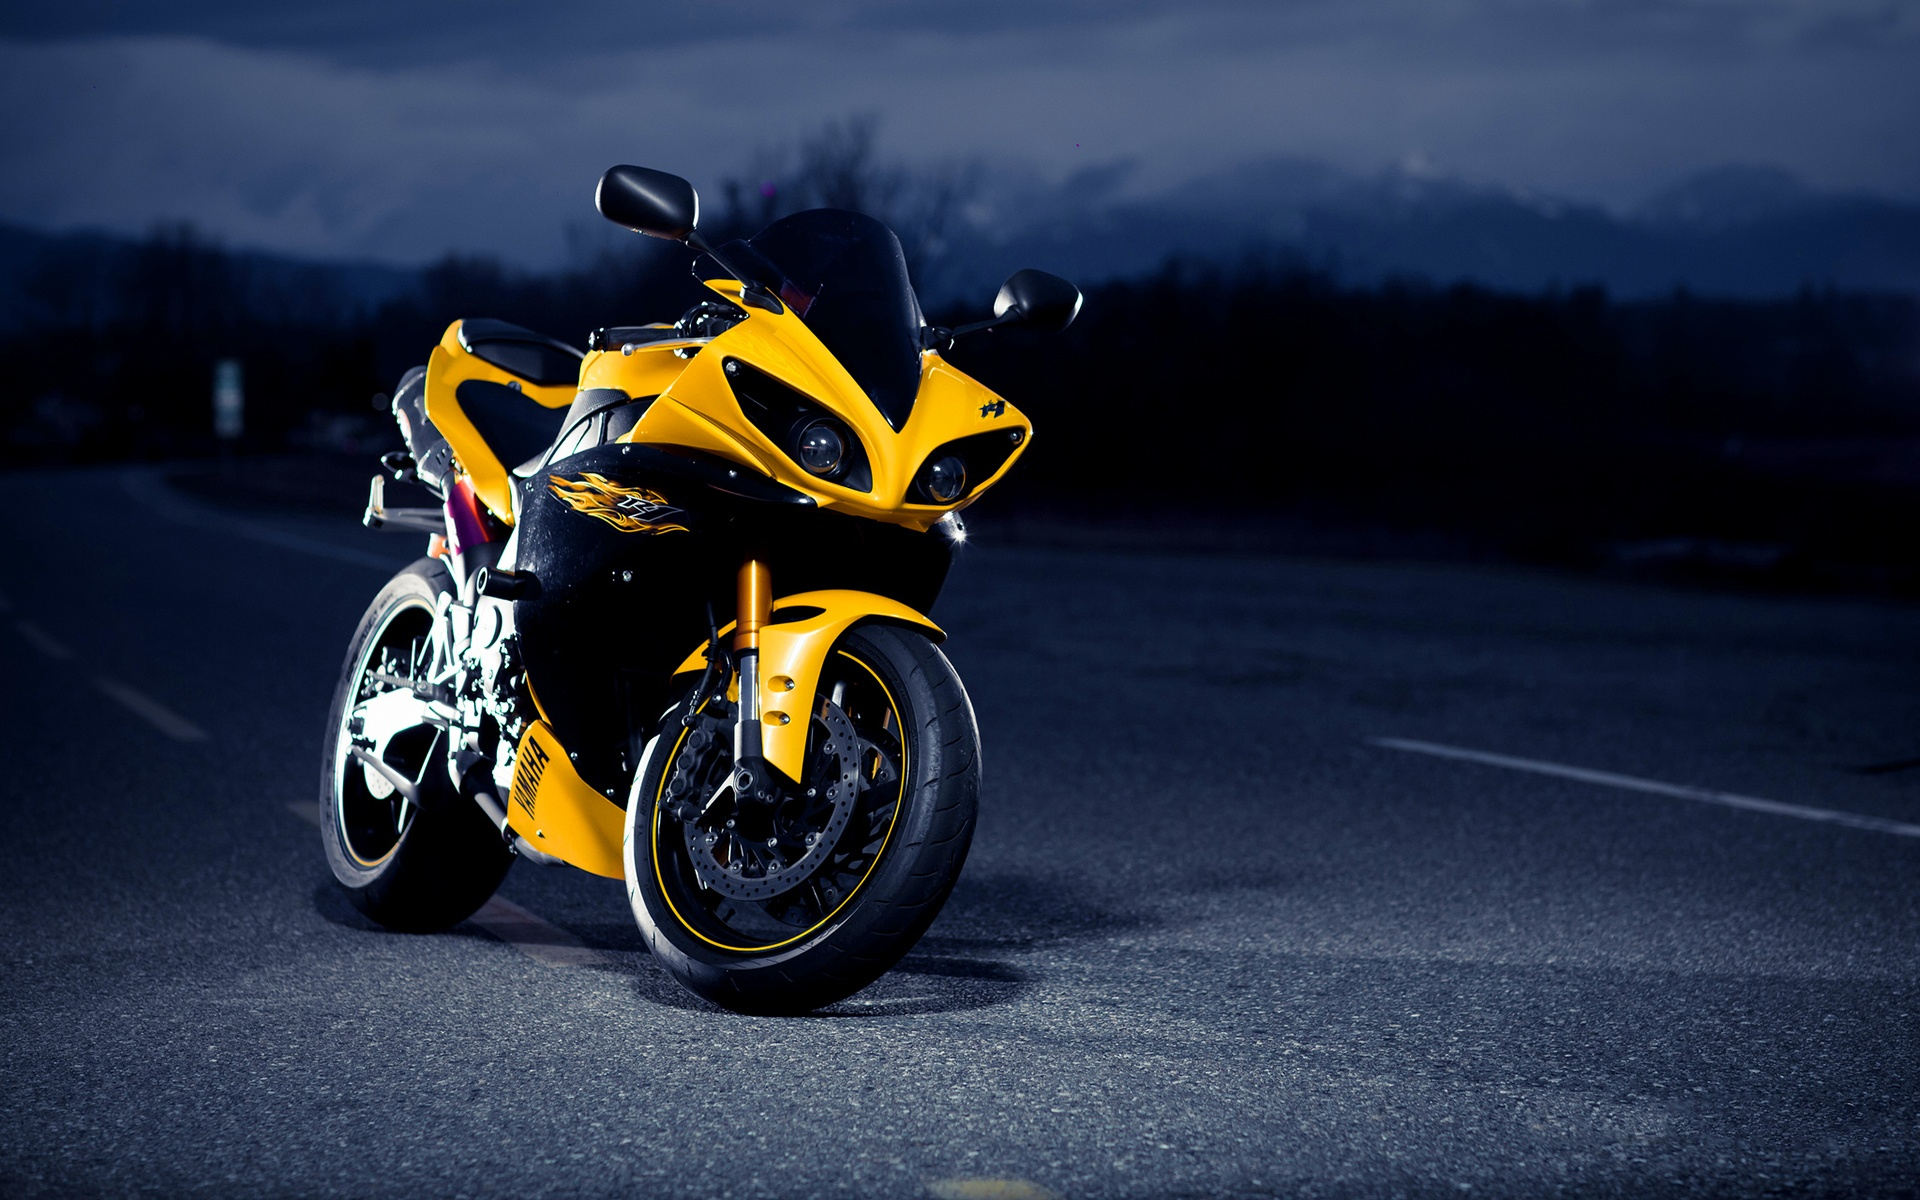 Yamaha R1 Black Yellow Wallpaper 1920x1200 15738